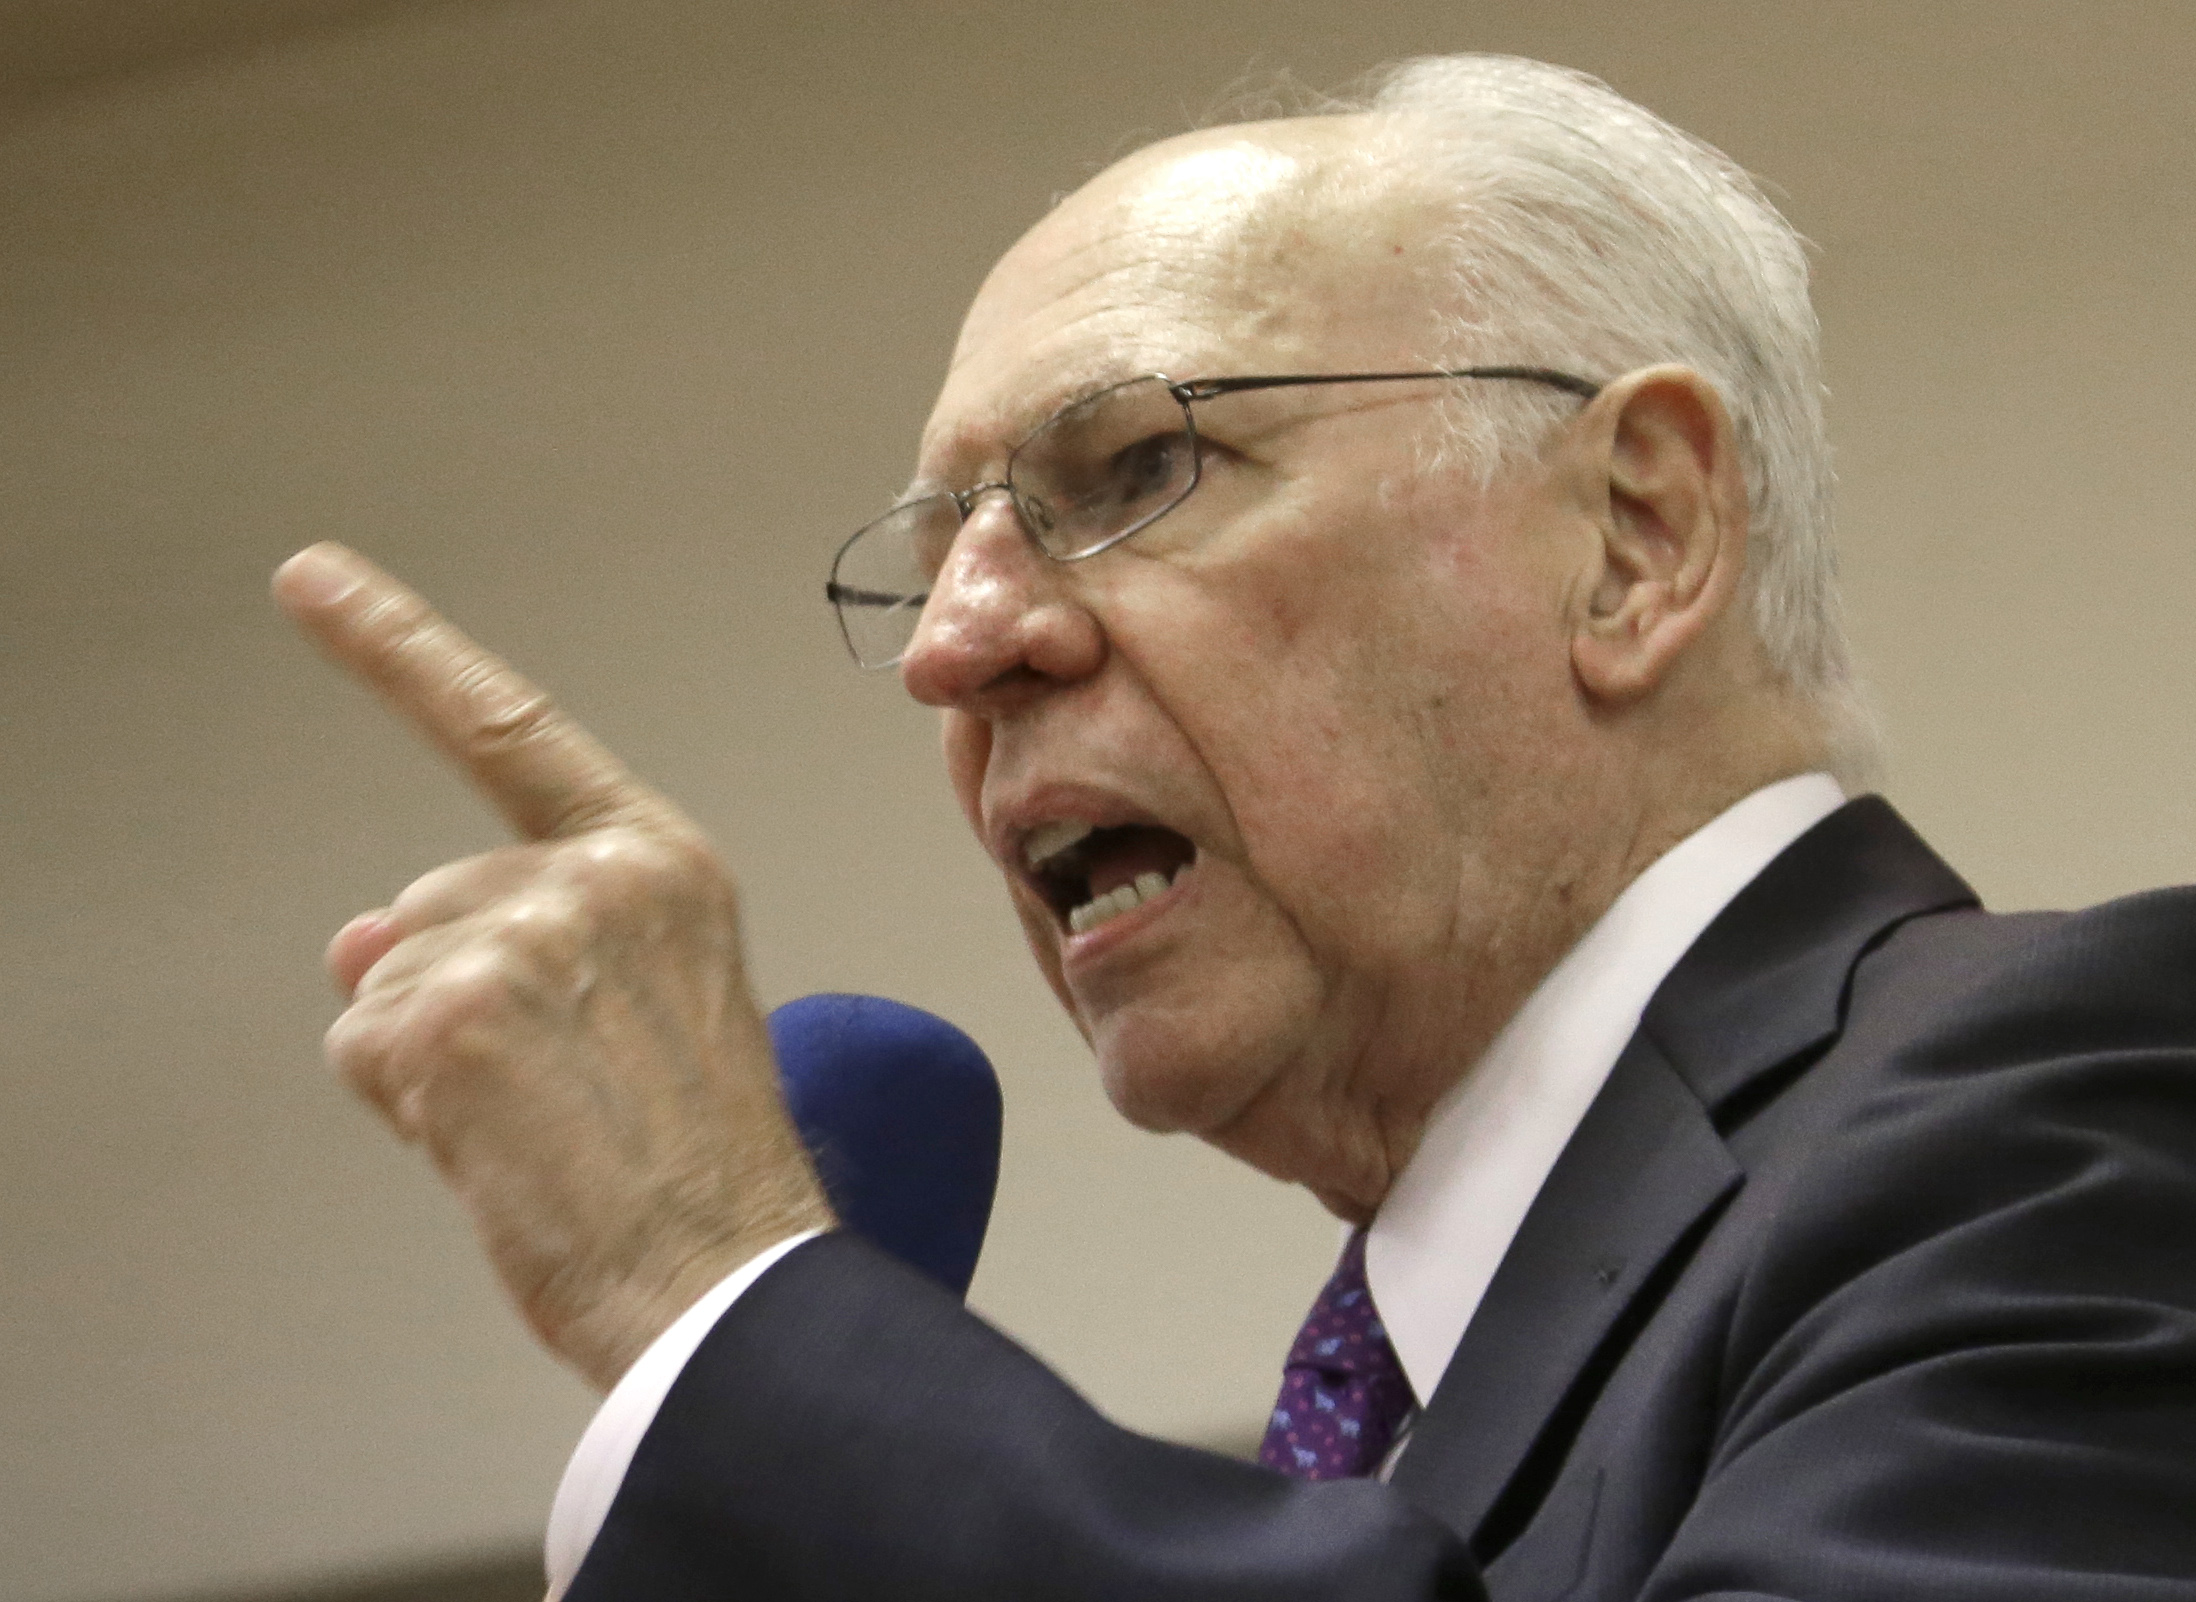 Rafael Cruz speaks during a tea party gathering on Jan. 10, 2014, in Madisonville, Texas.